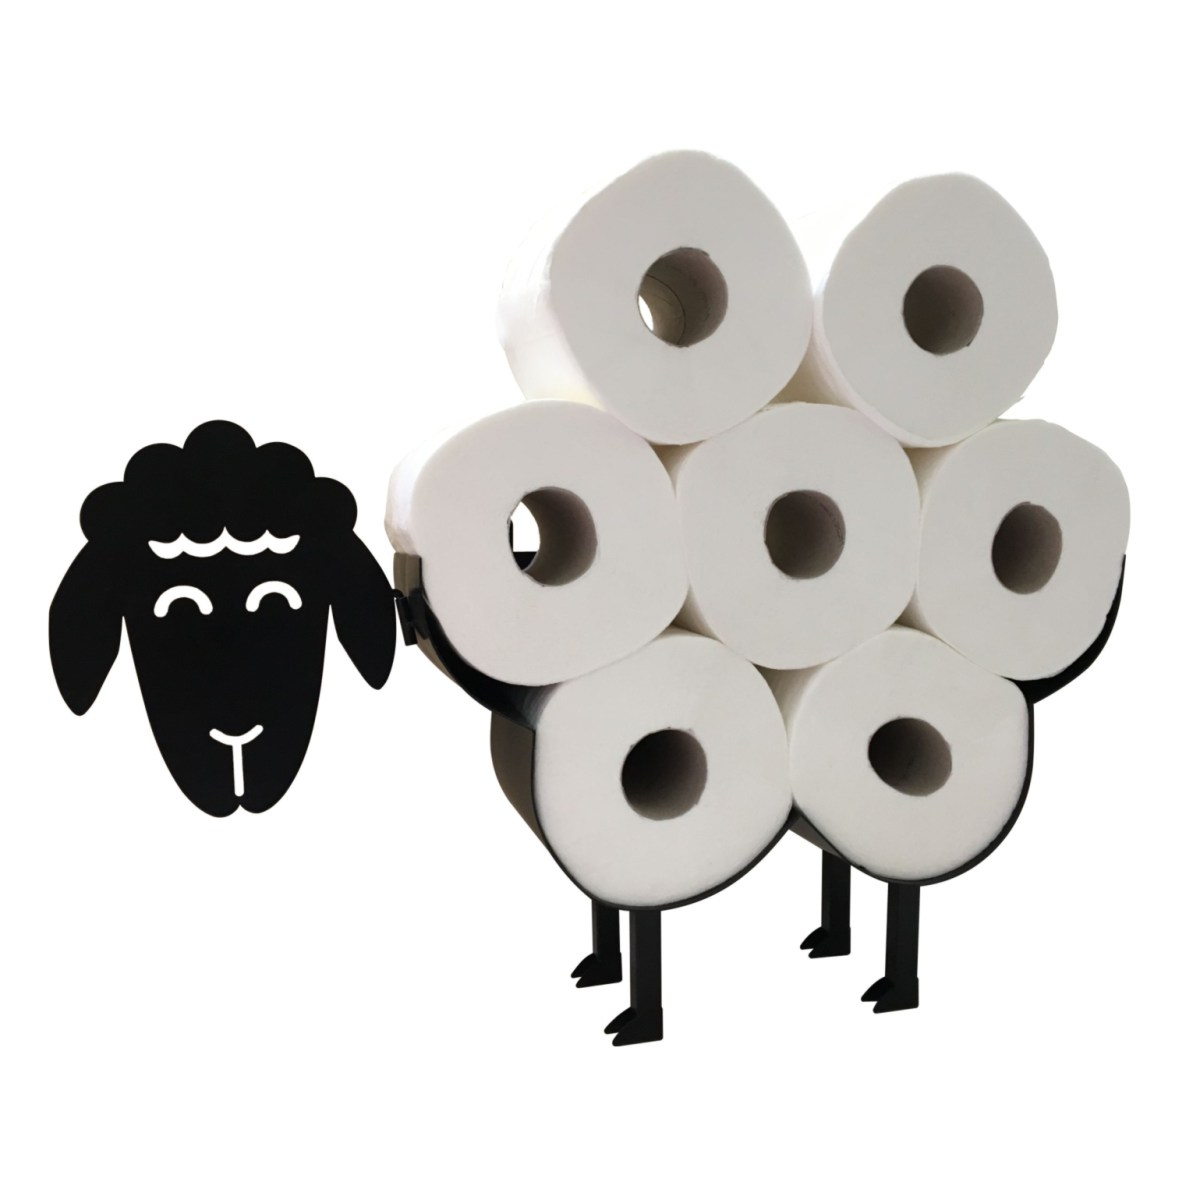 Cute Black Sheep Toilet Paper Roll Holder Free Standing